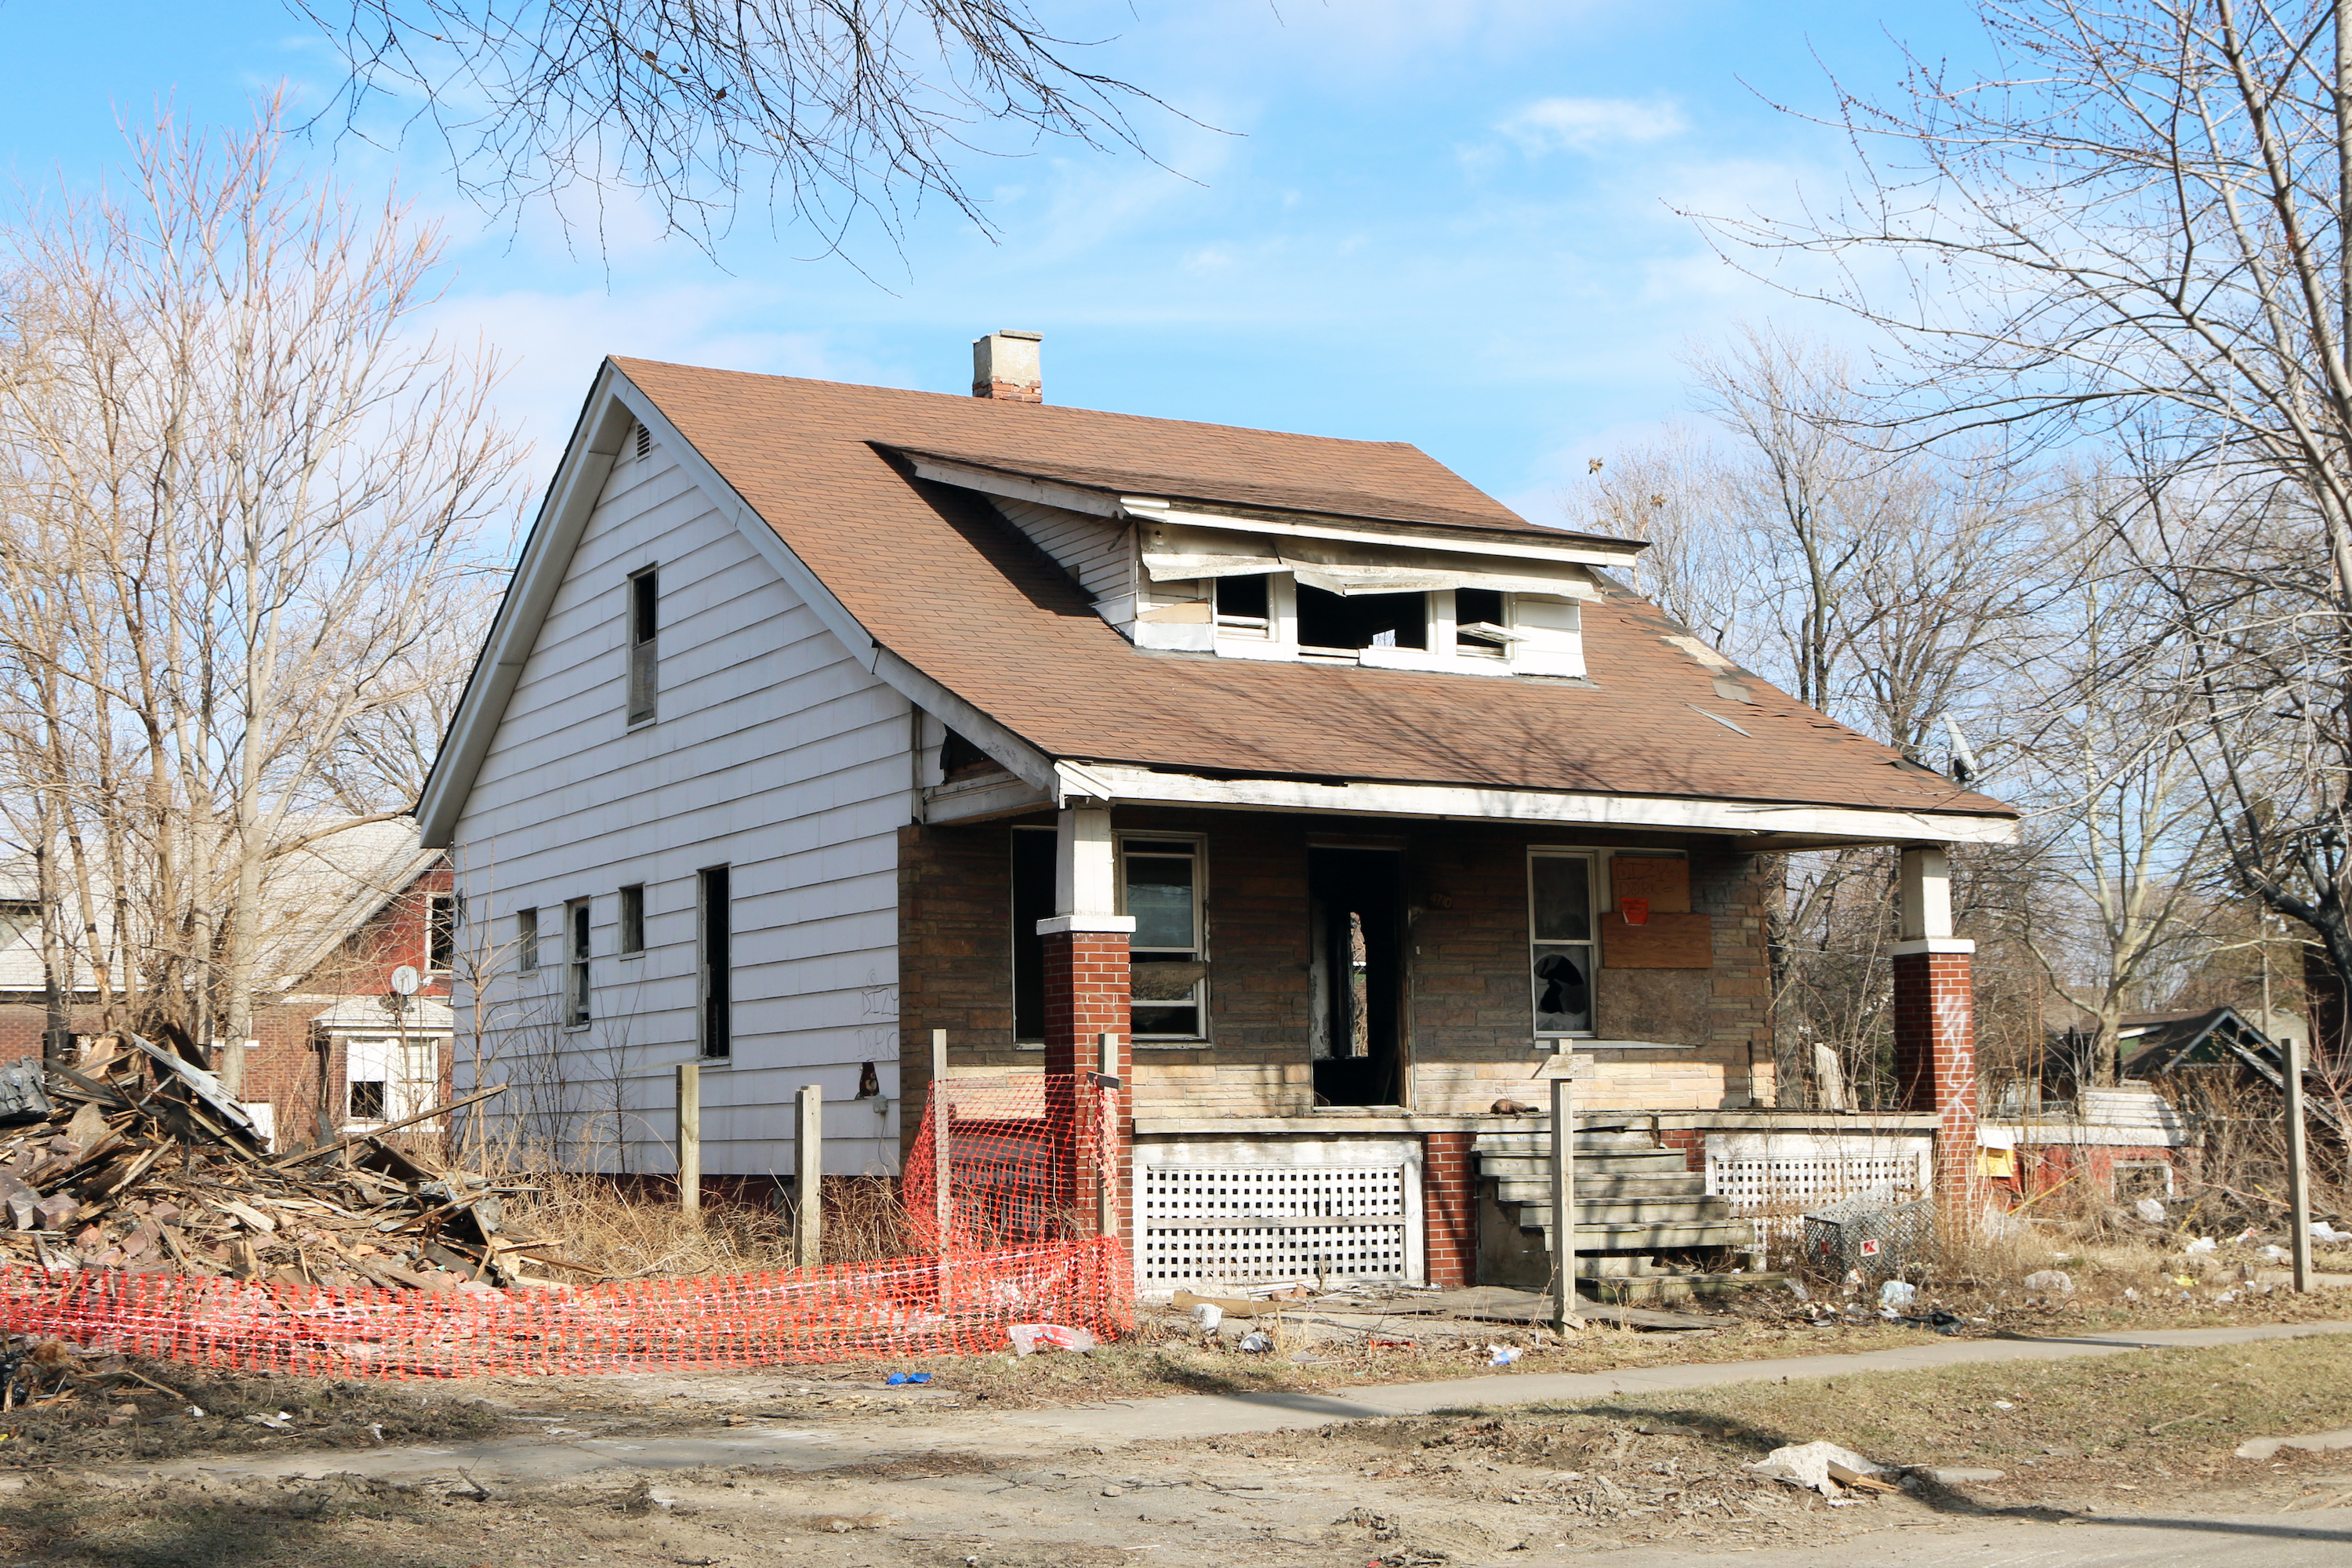 An abandoned home with no windows and red tape around a demolished home next door.